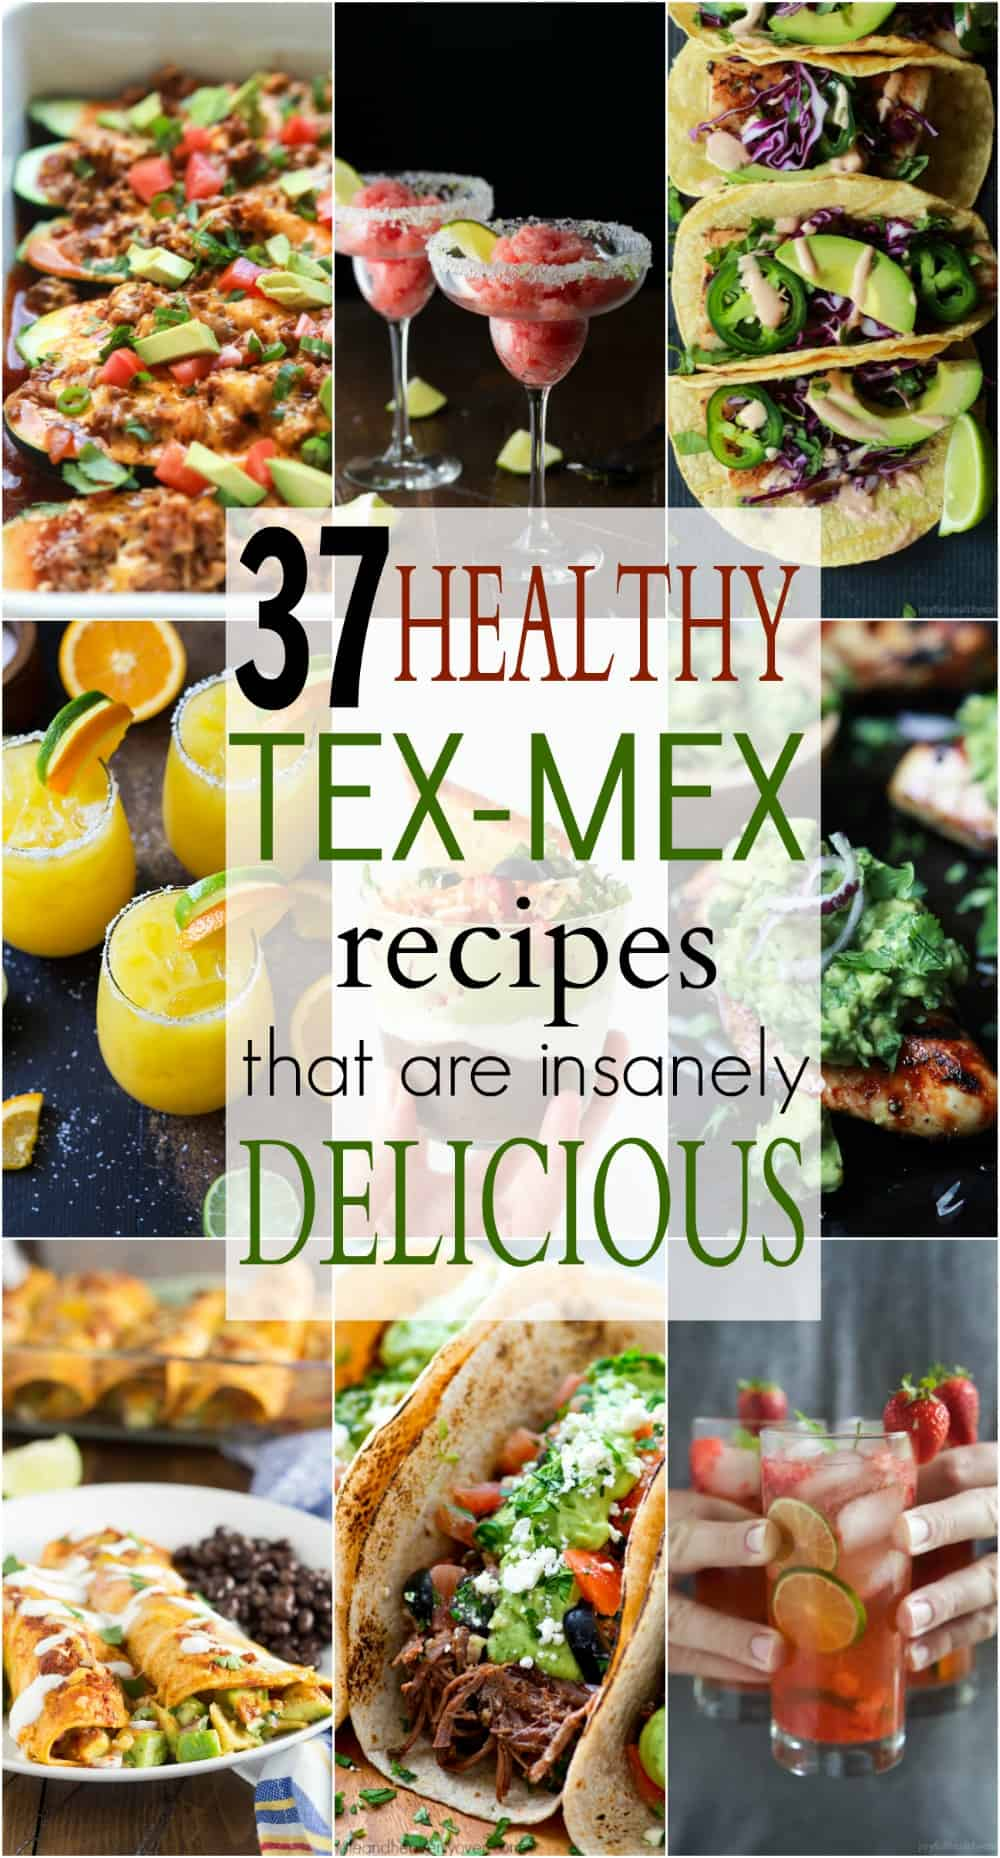 "37 Easy Healthy Tex-Mex Recipes that will ensure you have the best ""fiesta"" on the block! These recipes will blow your mind AND your taste buds. Bring on the Mexican Food! Ole! 